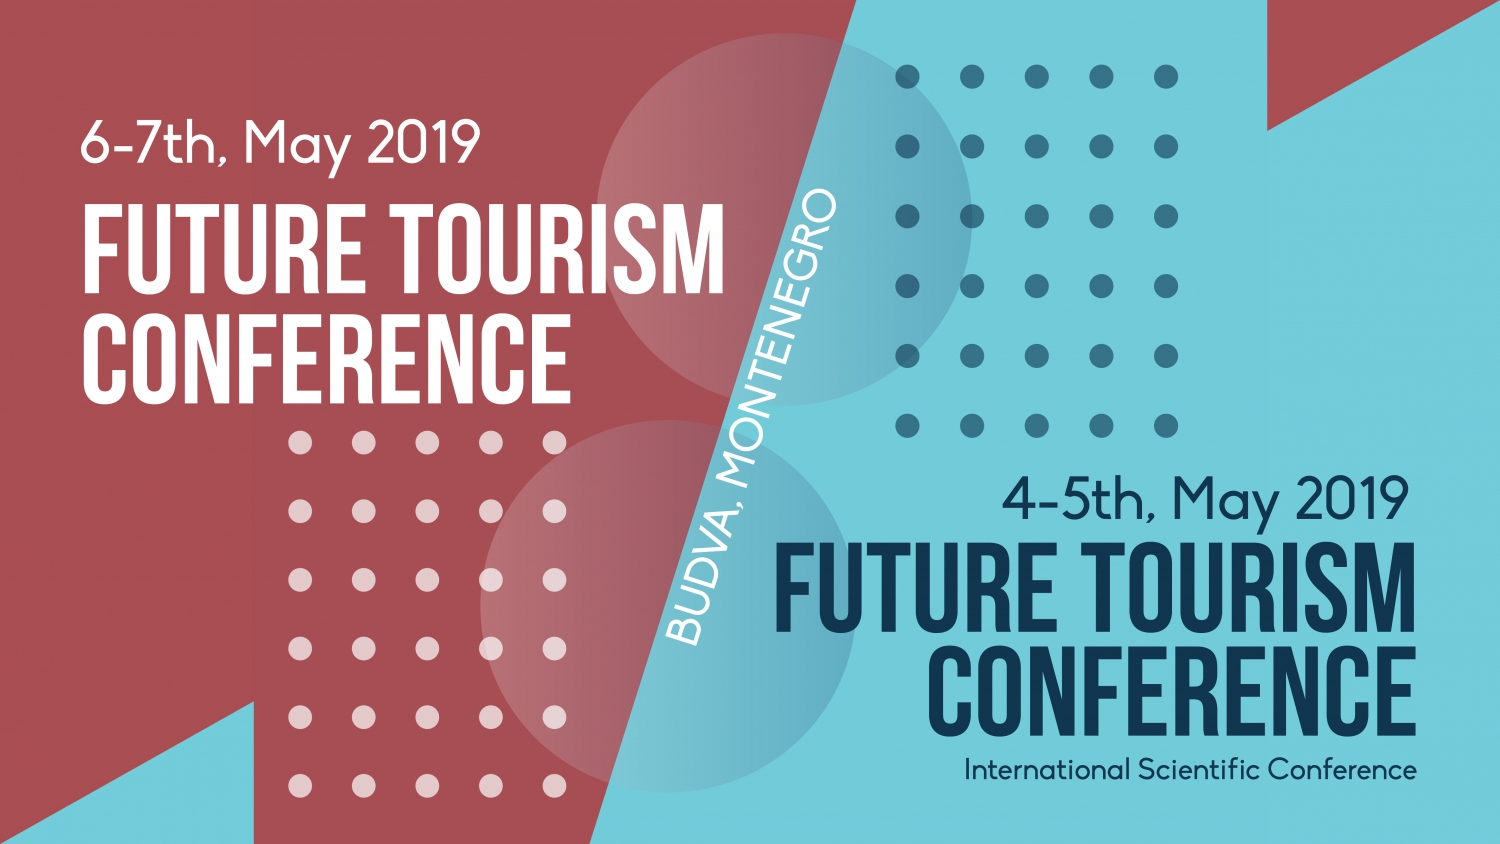 Future Tourism Conference